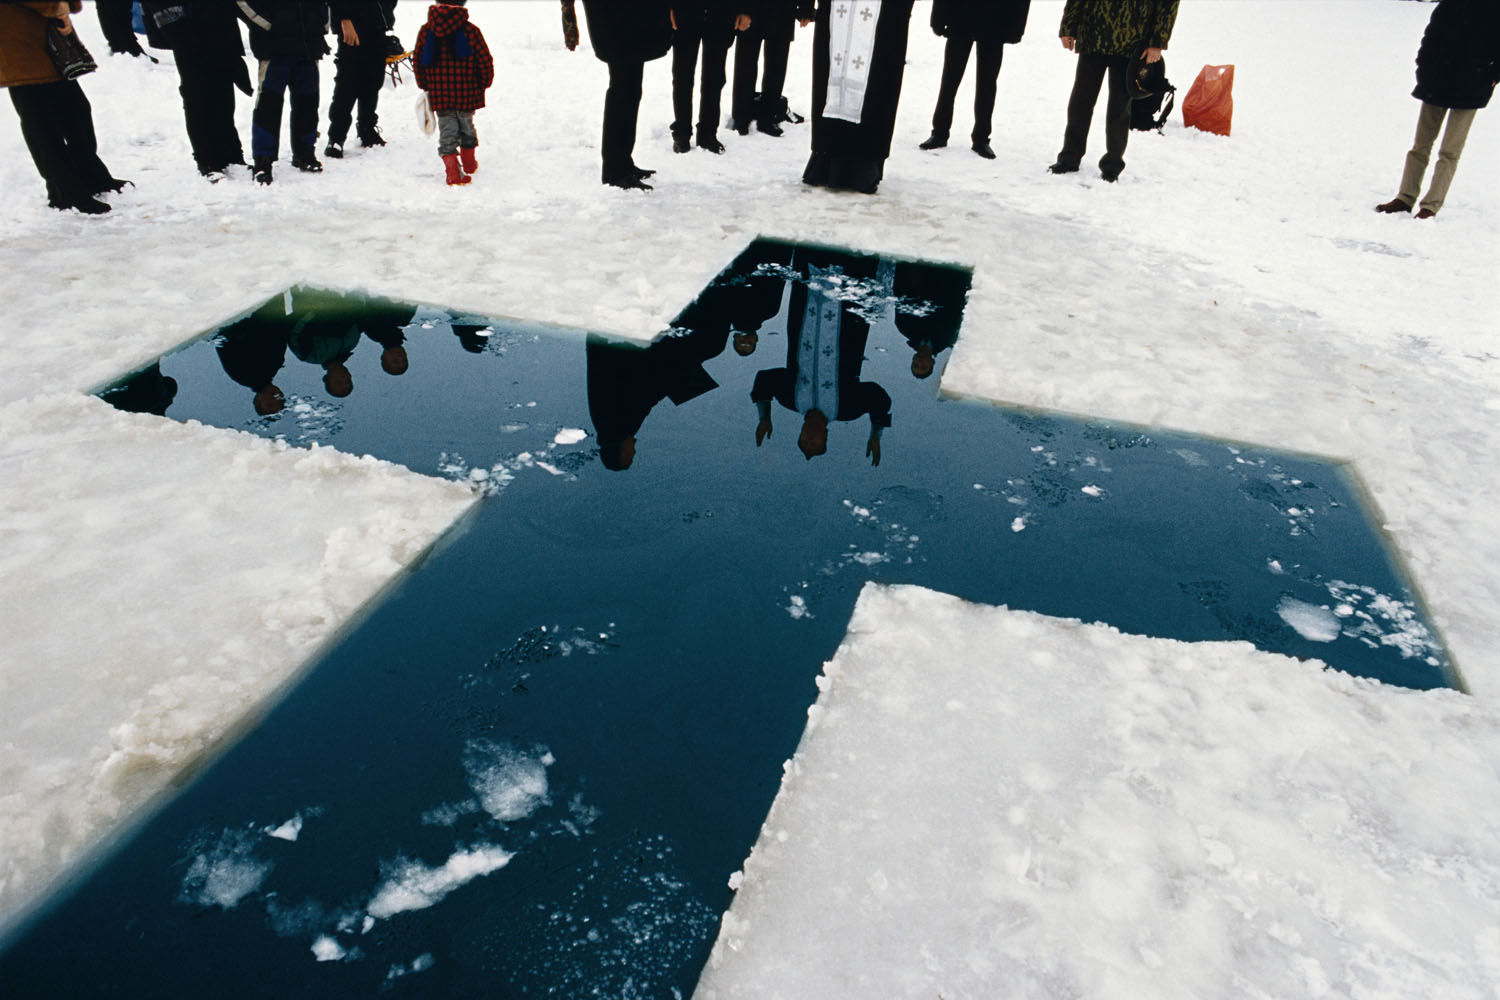 The population of Transdniester is mainly ethnic Russians and the main religion is Russian Orthodox Christianity. Here, a priest gives his blessings before a christening in the icy waters of January. Transdniester, Maldova. 2004.                                                                                             (WPP 2nd prize, Daily Life stories, 2004)